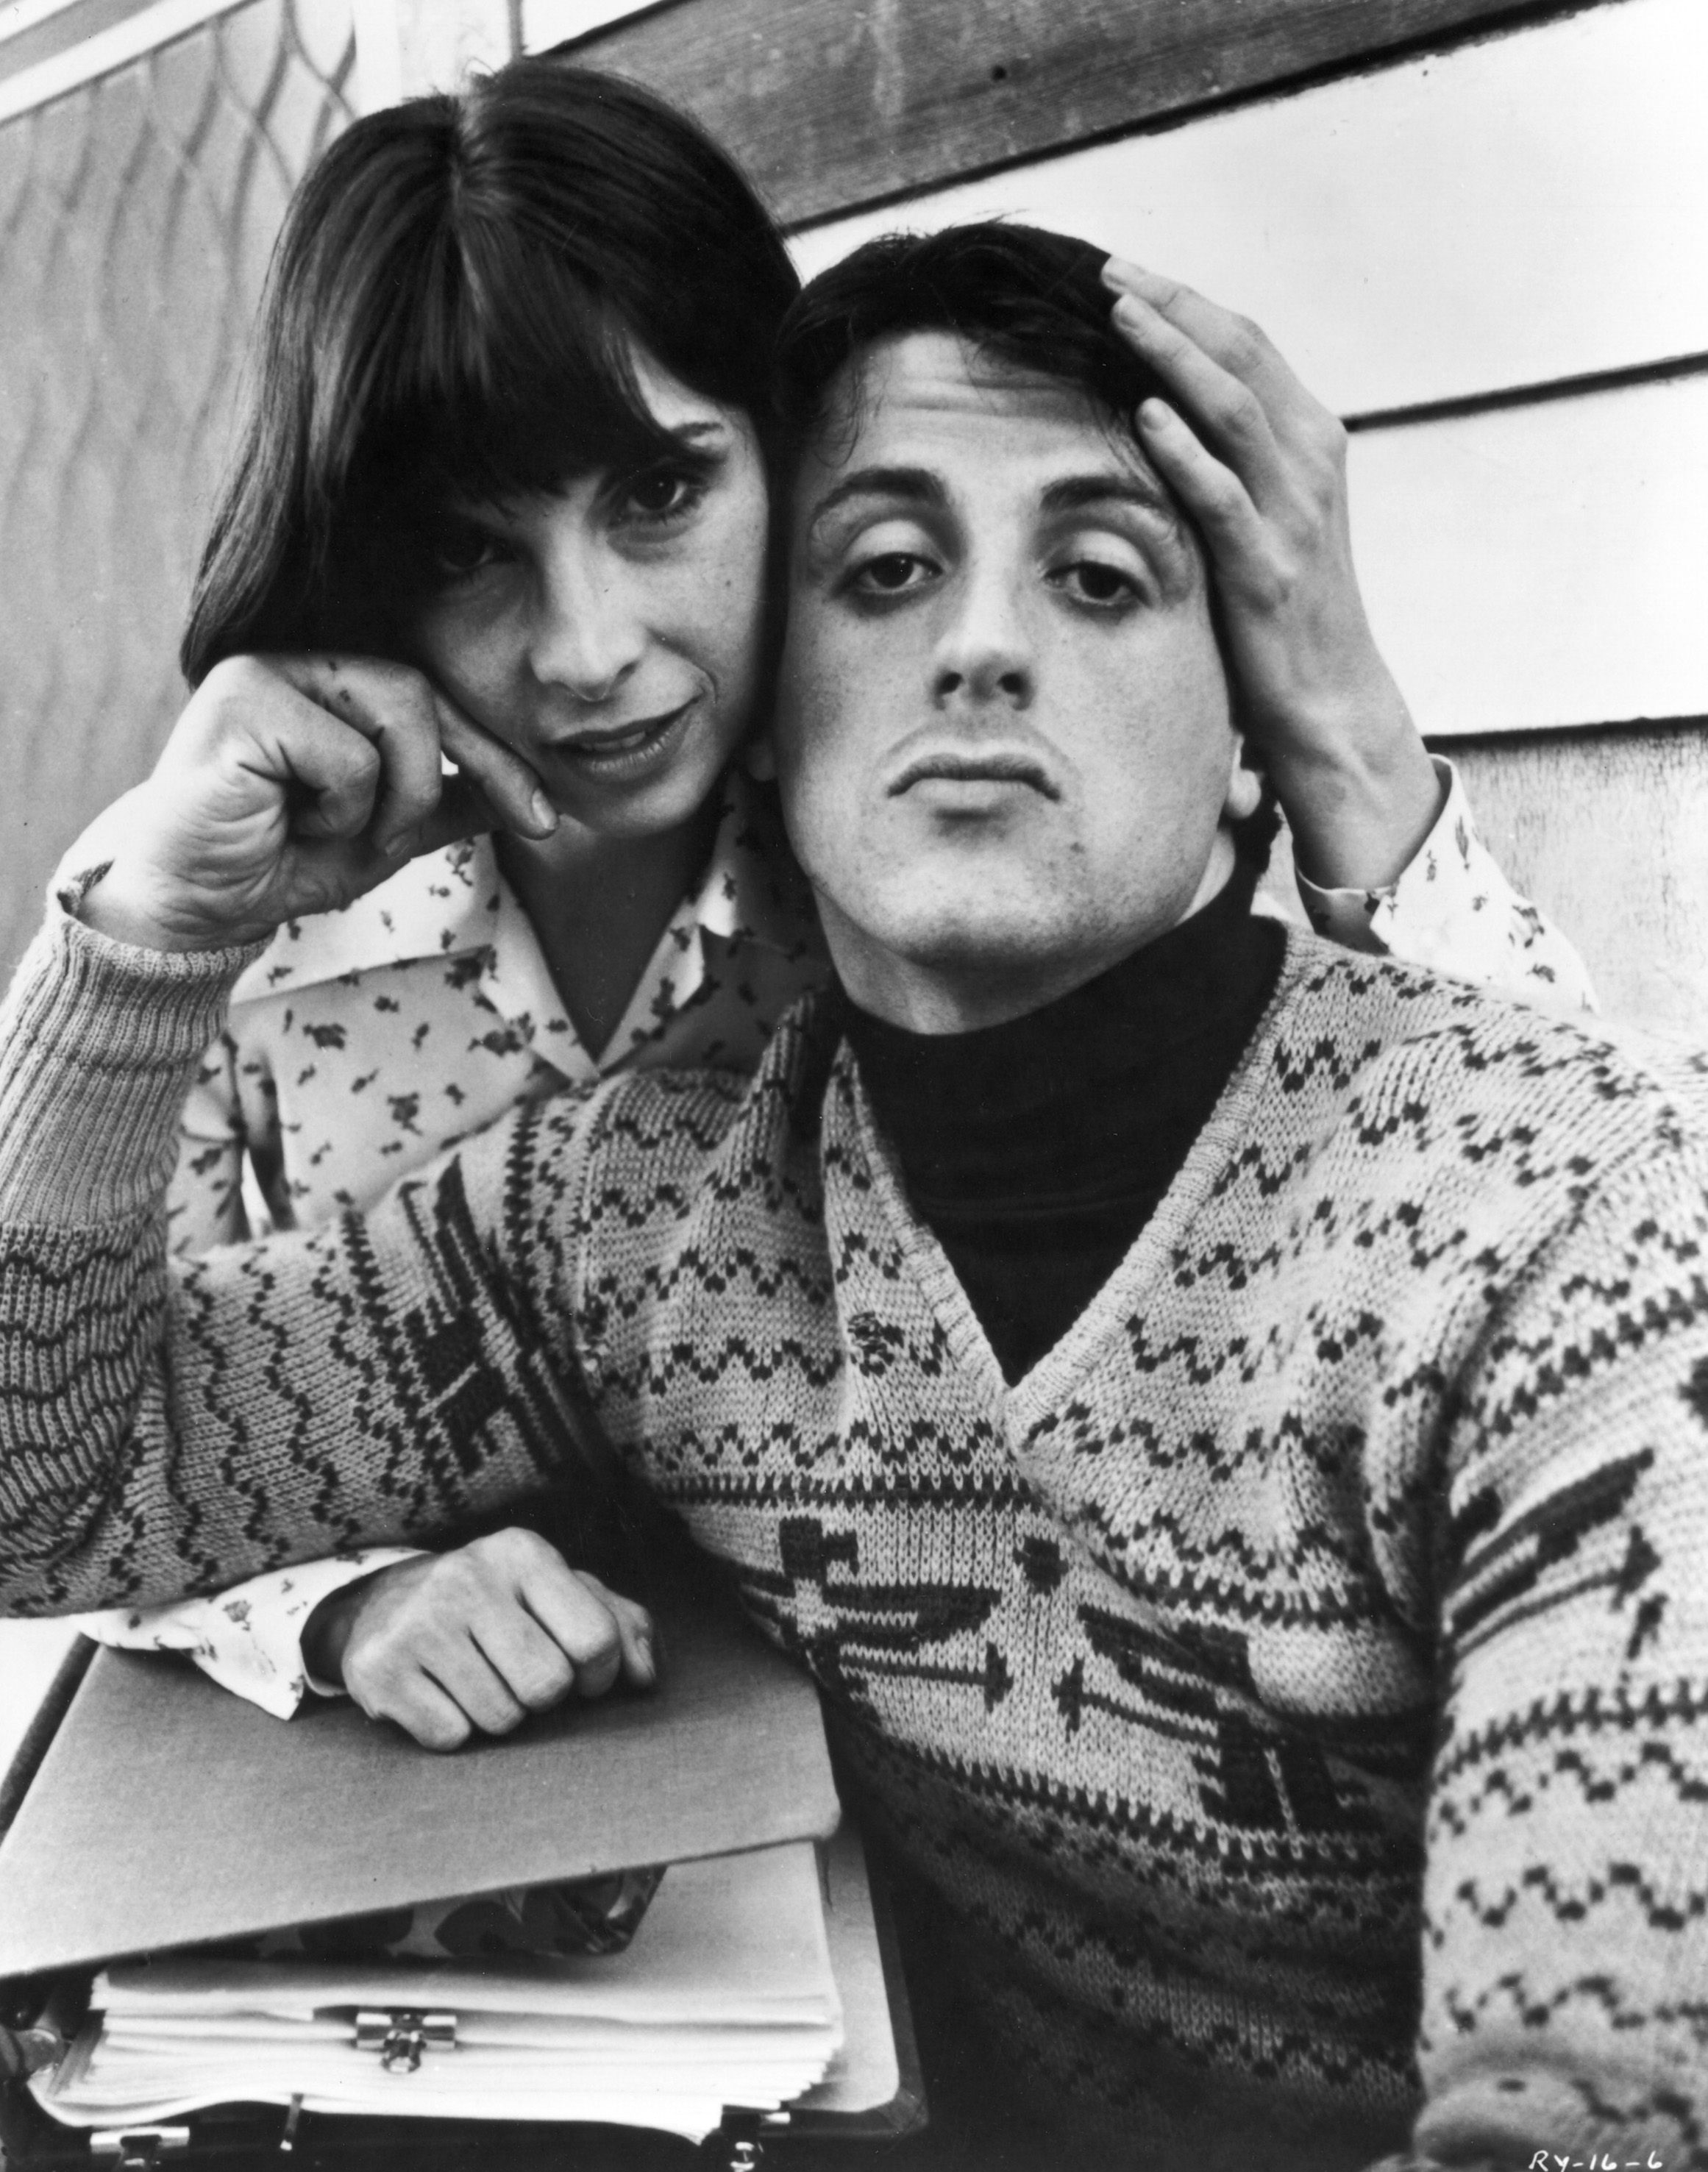 Talia Shire in the movie Rocky with Sylvester Stallone